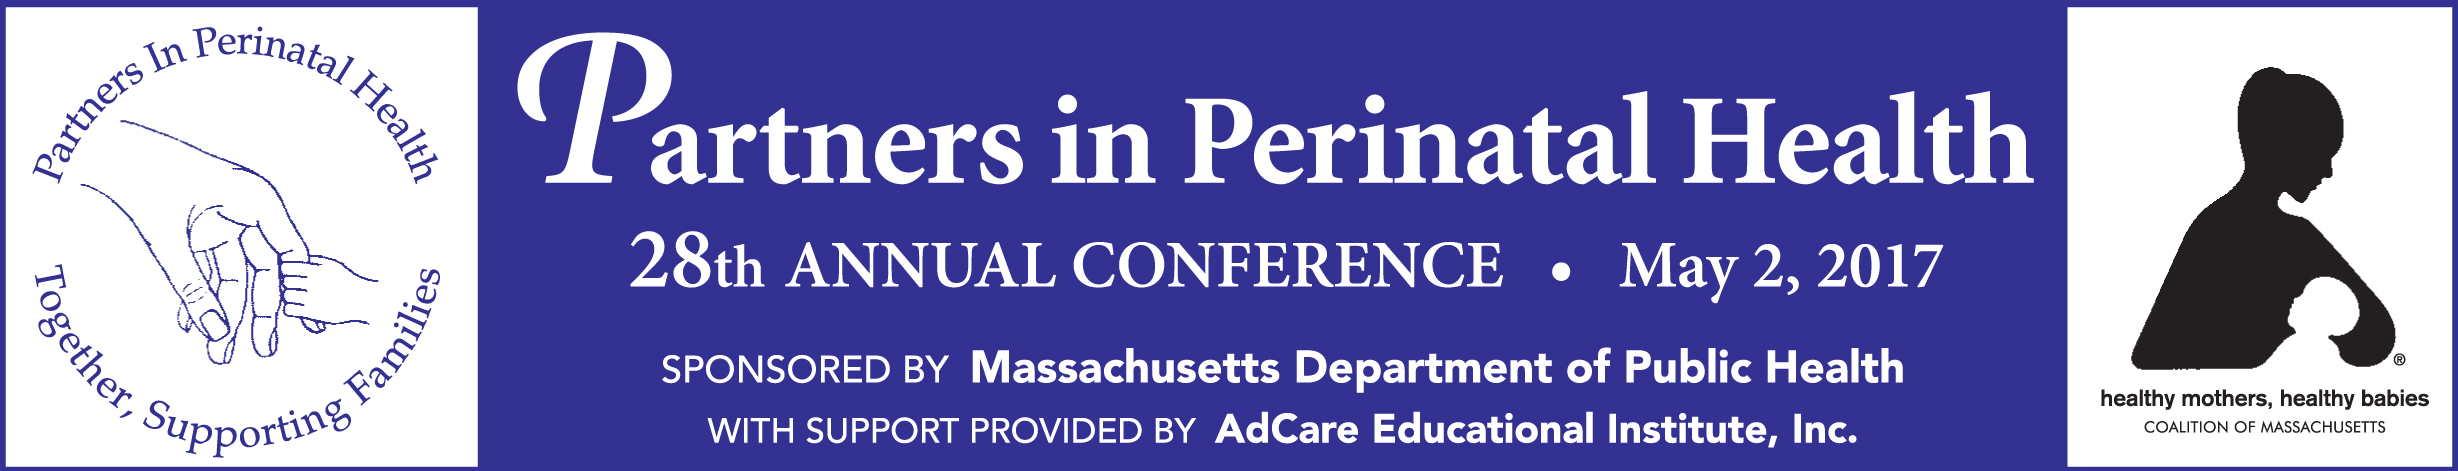 Partners in Perinatal Health 28th Annual Conference